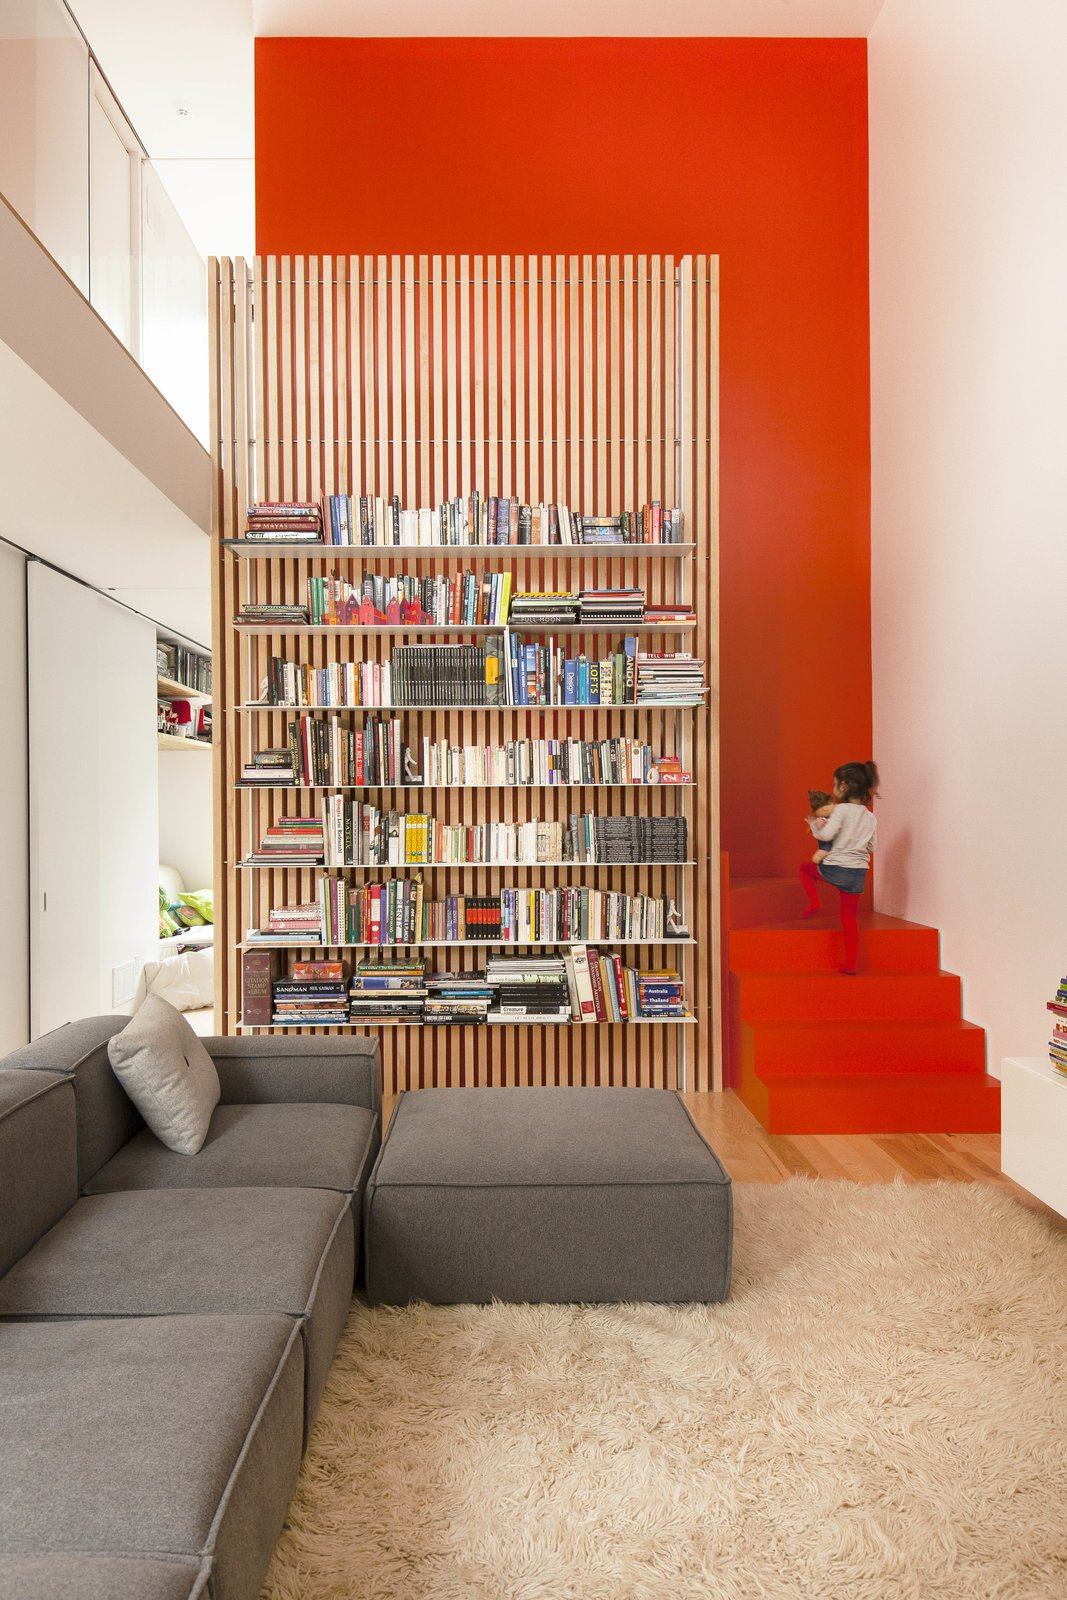 #color #livingroom #red #staircase #bookshelf #Montreal #Canada #LaSHEDArchitecture   36+ Interior Color Pop Ideas For Modern Homes by Dwell